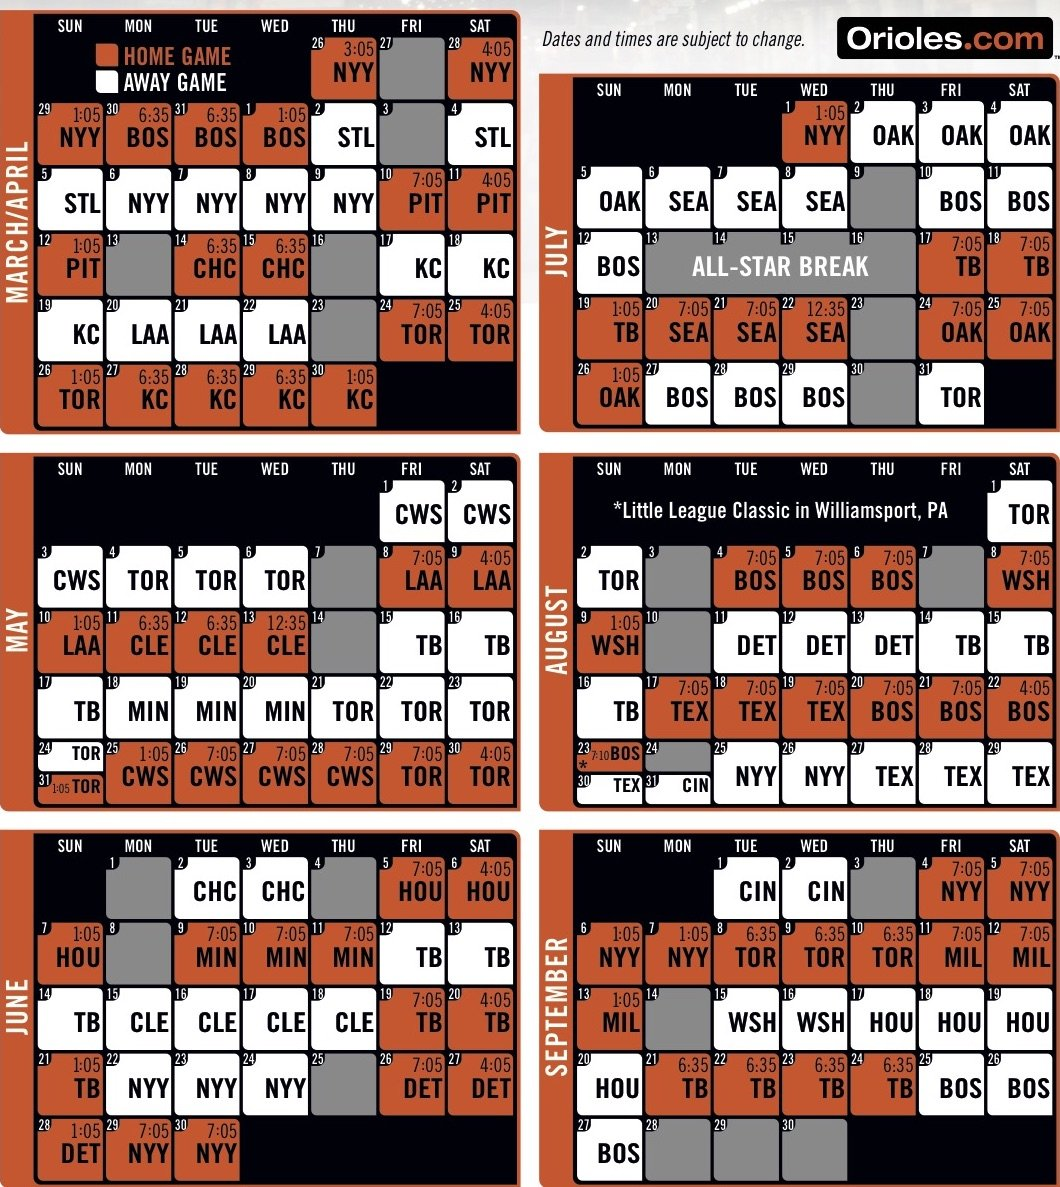 Orioles Schedule 2020.Orioles Release 2020 Schedule With Earlier Start Times On